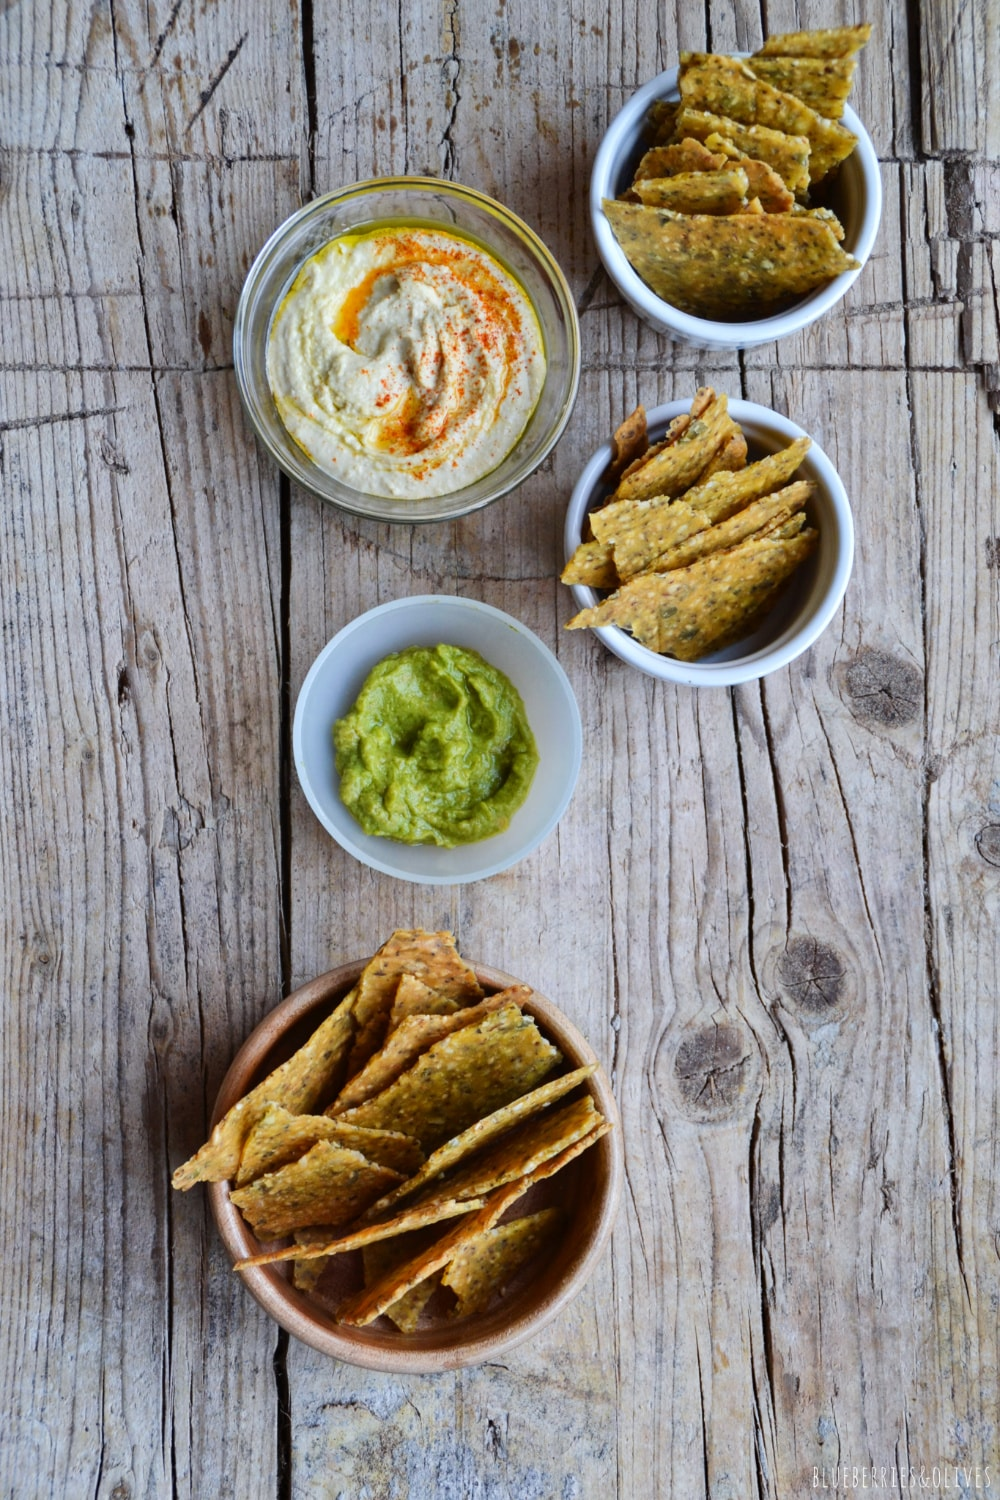 CORN CRACKERS WITH SOME DIPPING SAUCES, OLD WOOD BACKGROUND